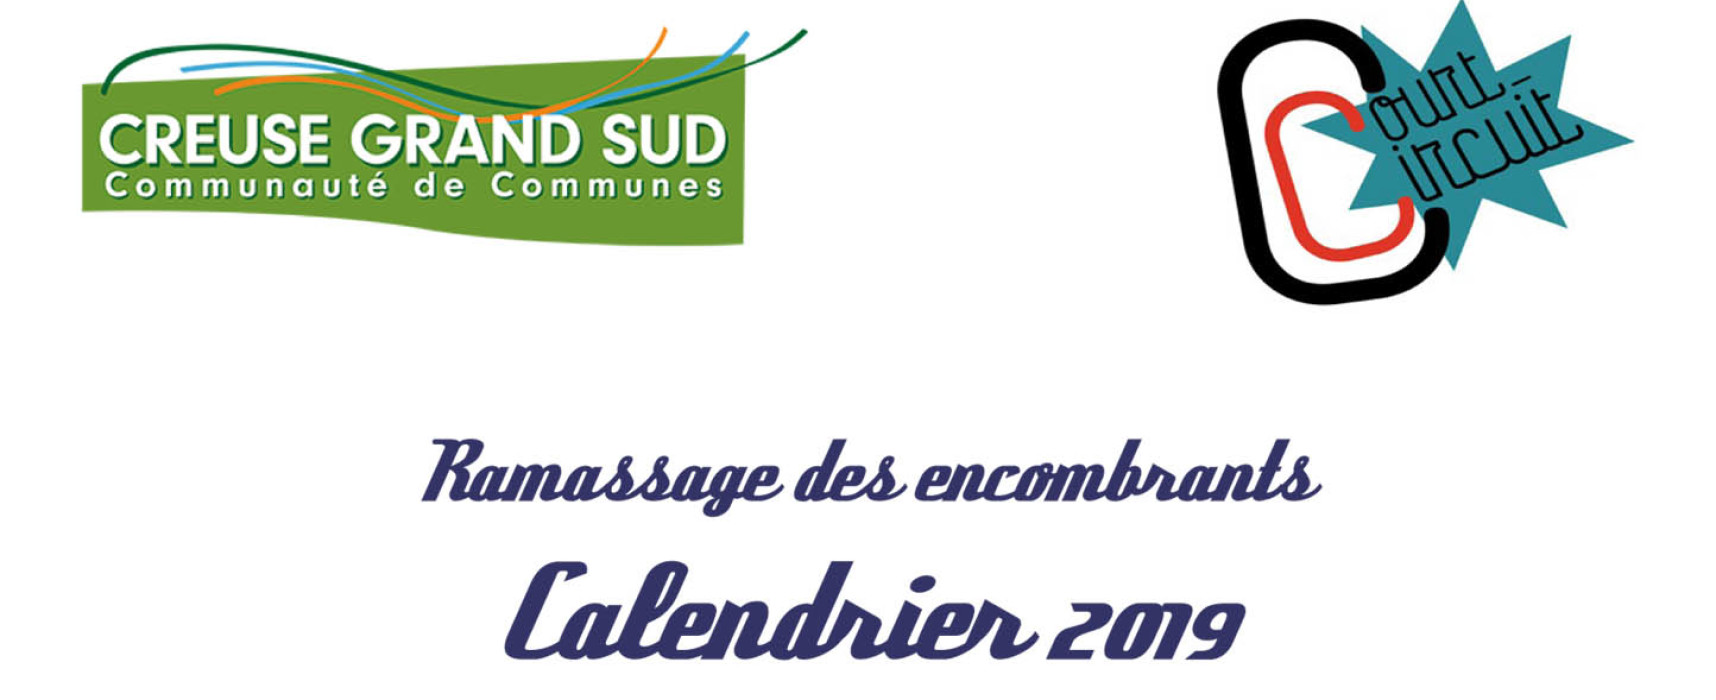 Ramassage des encombrants – Calendrier 2019